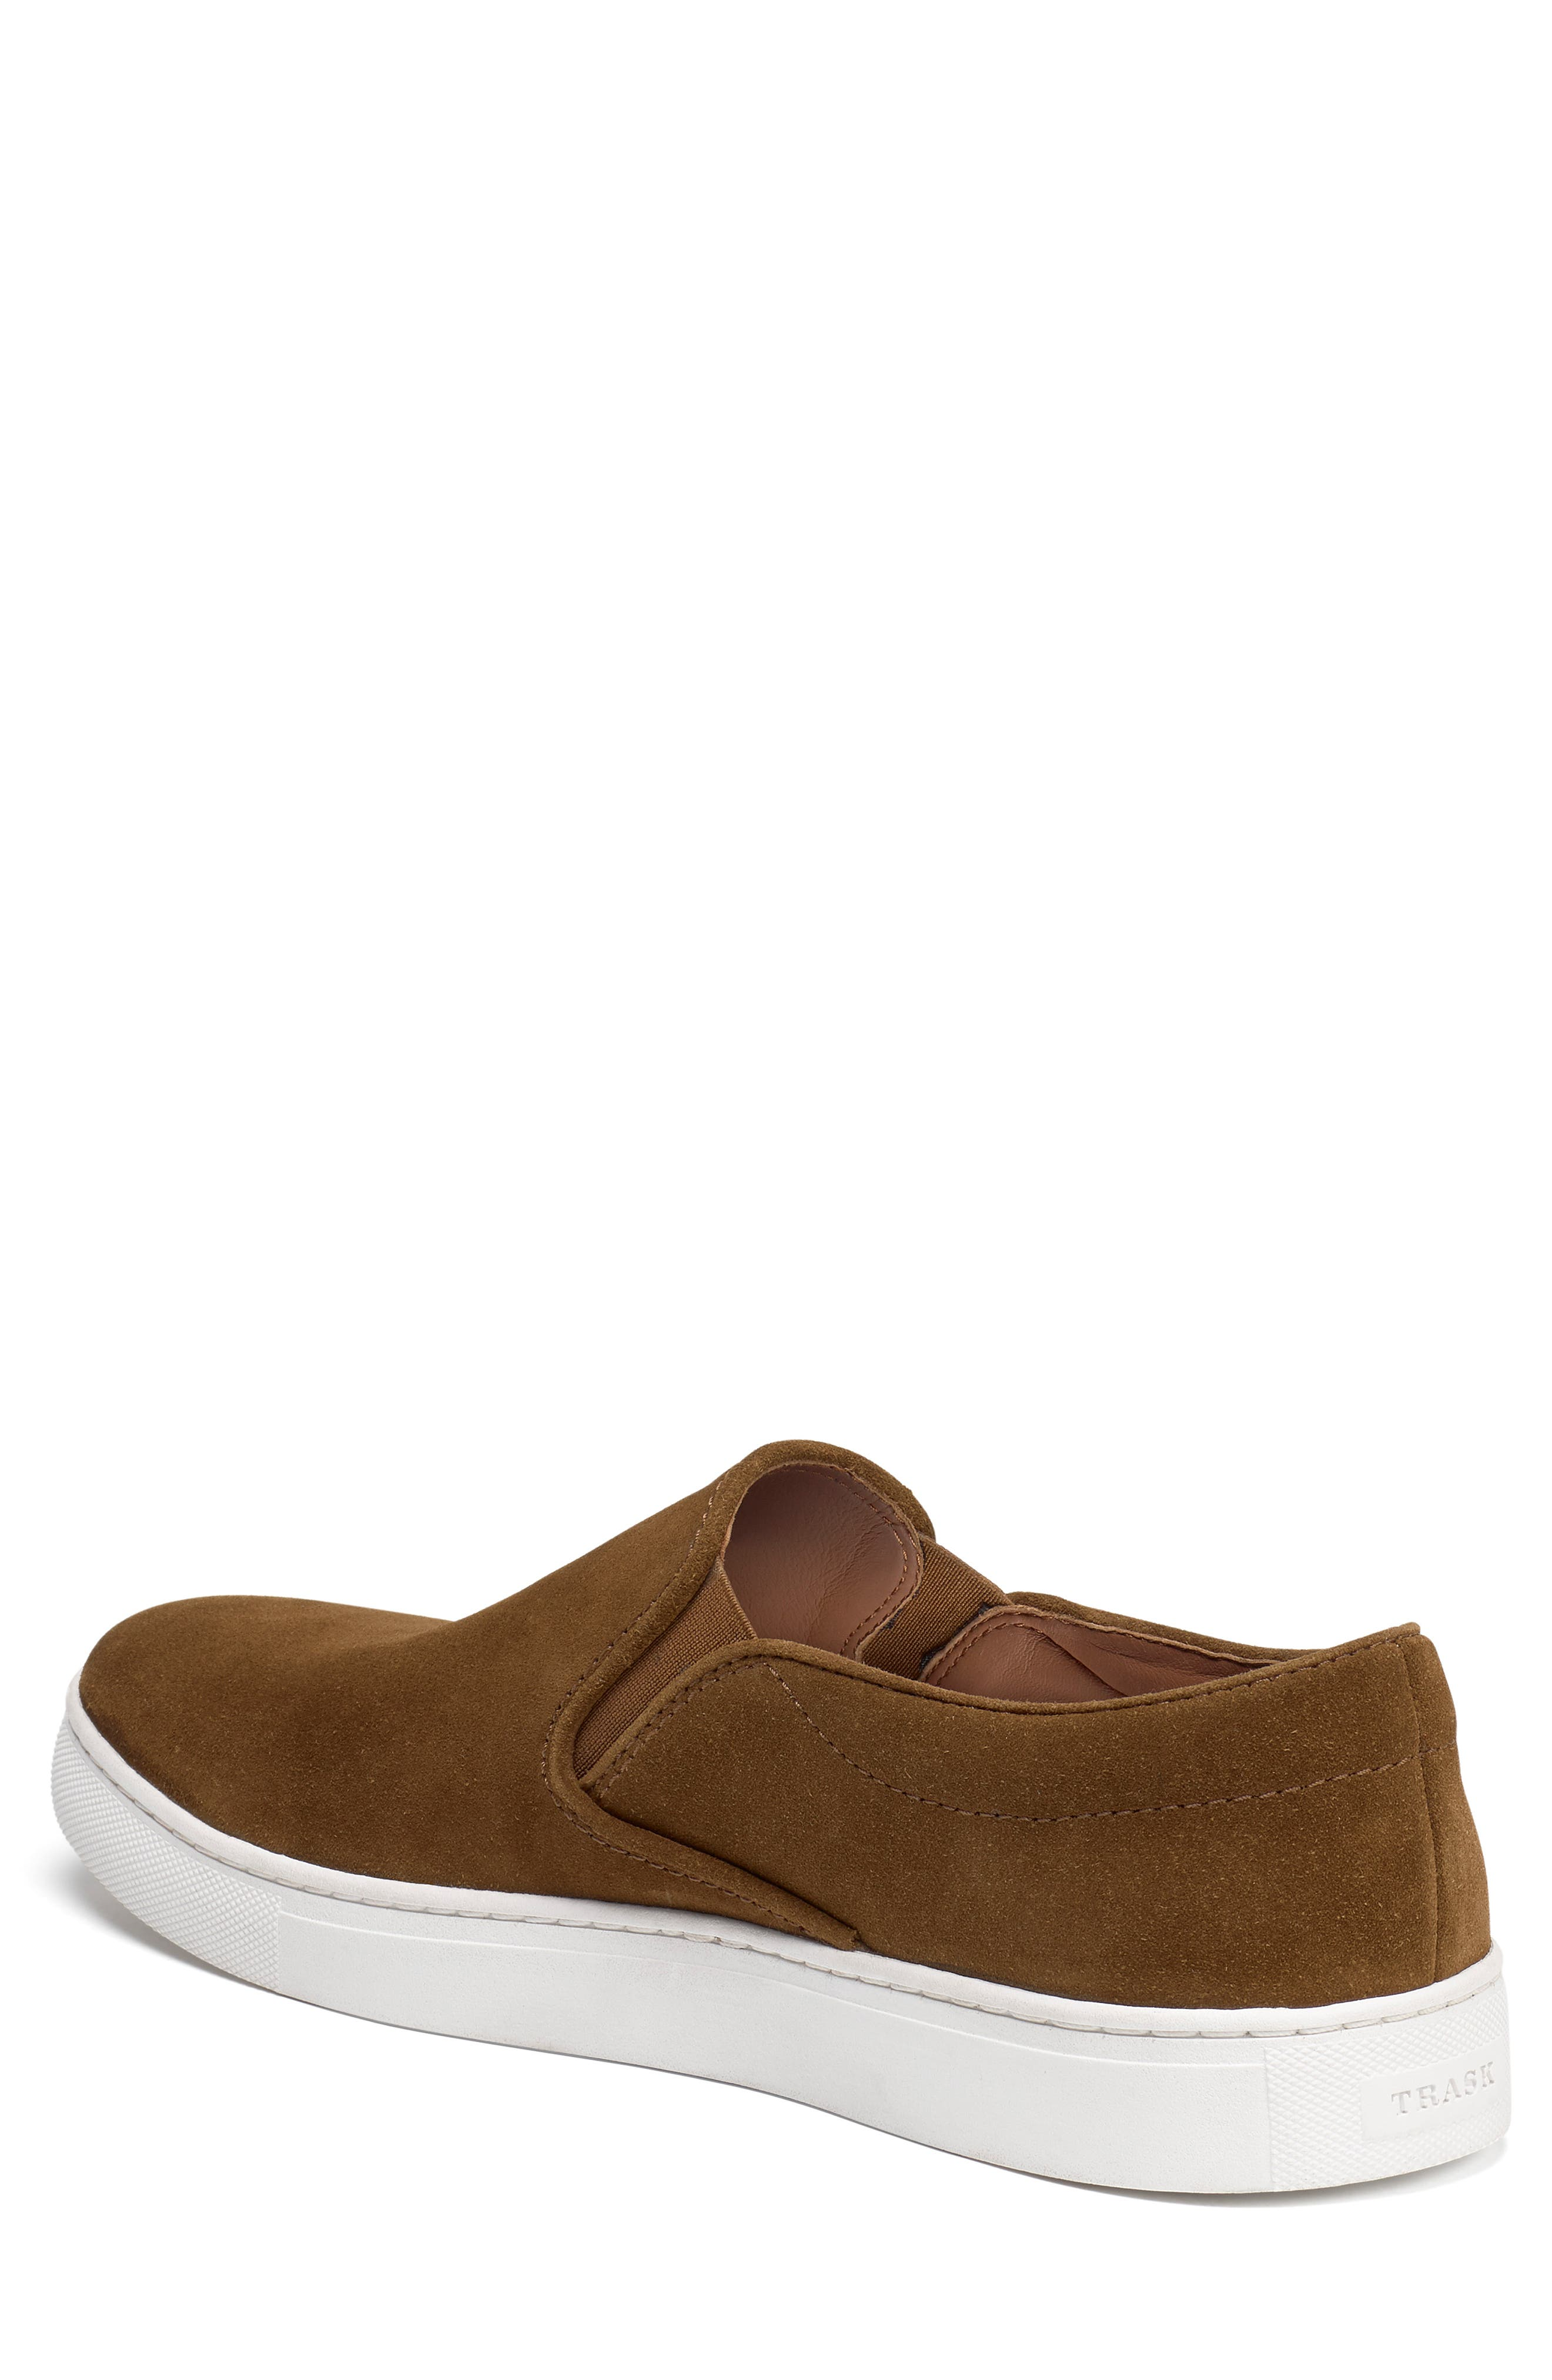 TRASK, Alex Slip-On Sneaker, Alternate thumbnail 2, color, SNUFF SUEDE